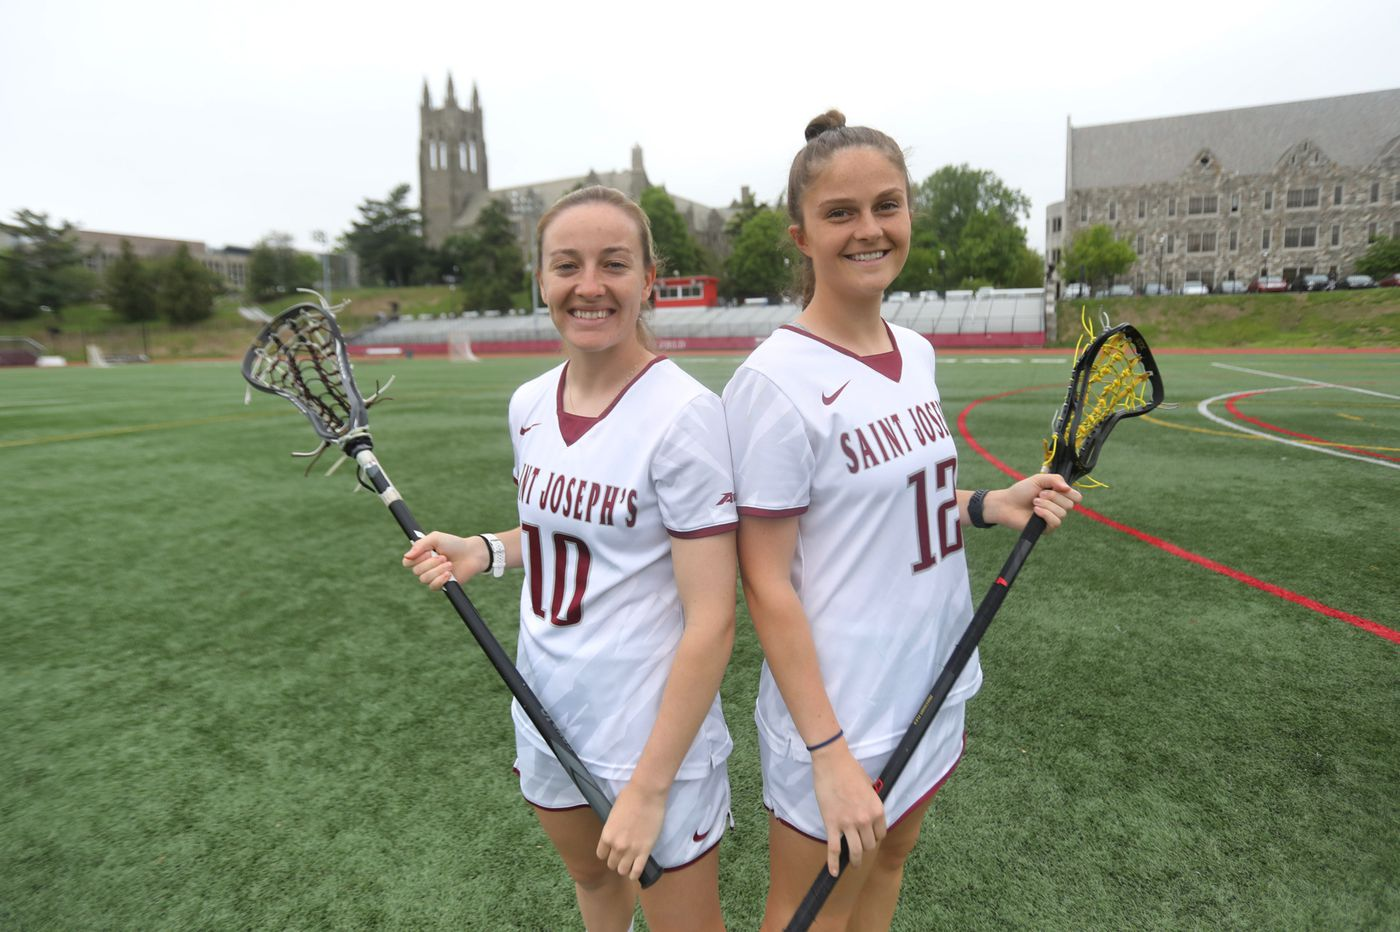 St. Joseph's lacrosse duo Rebecca Lane and Stephanie Kelly share Australian connection